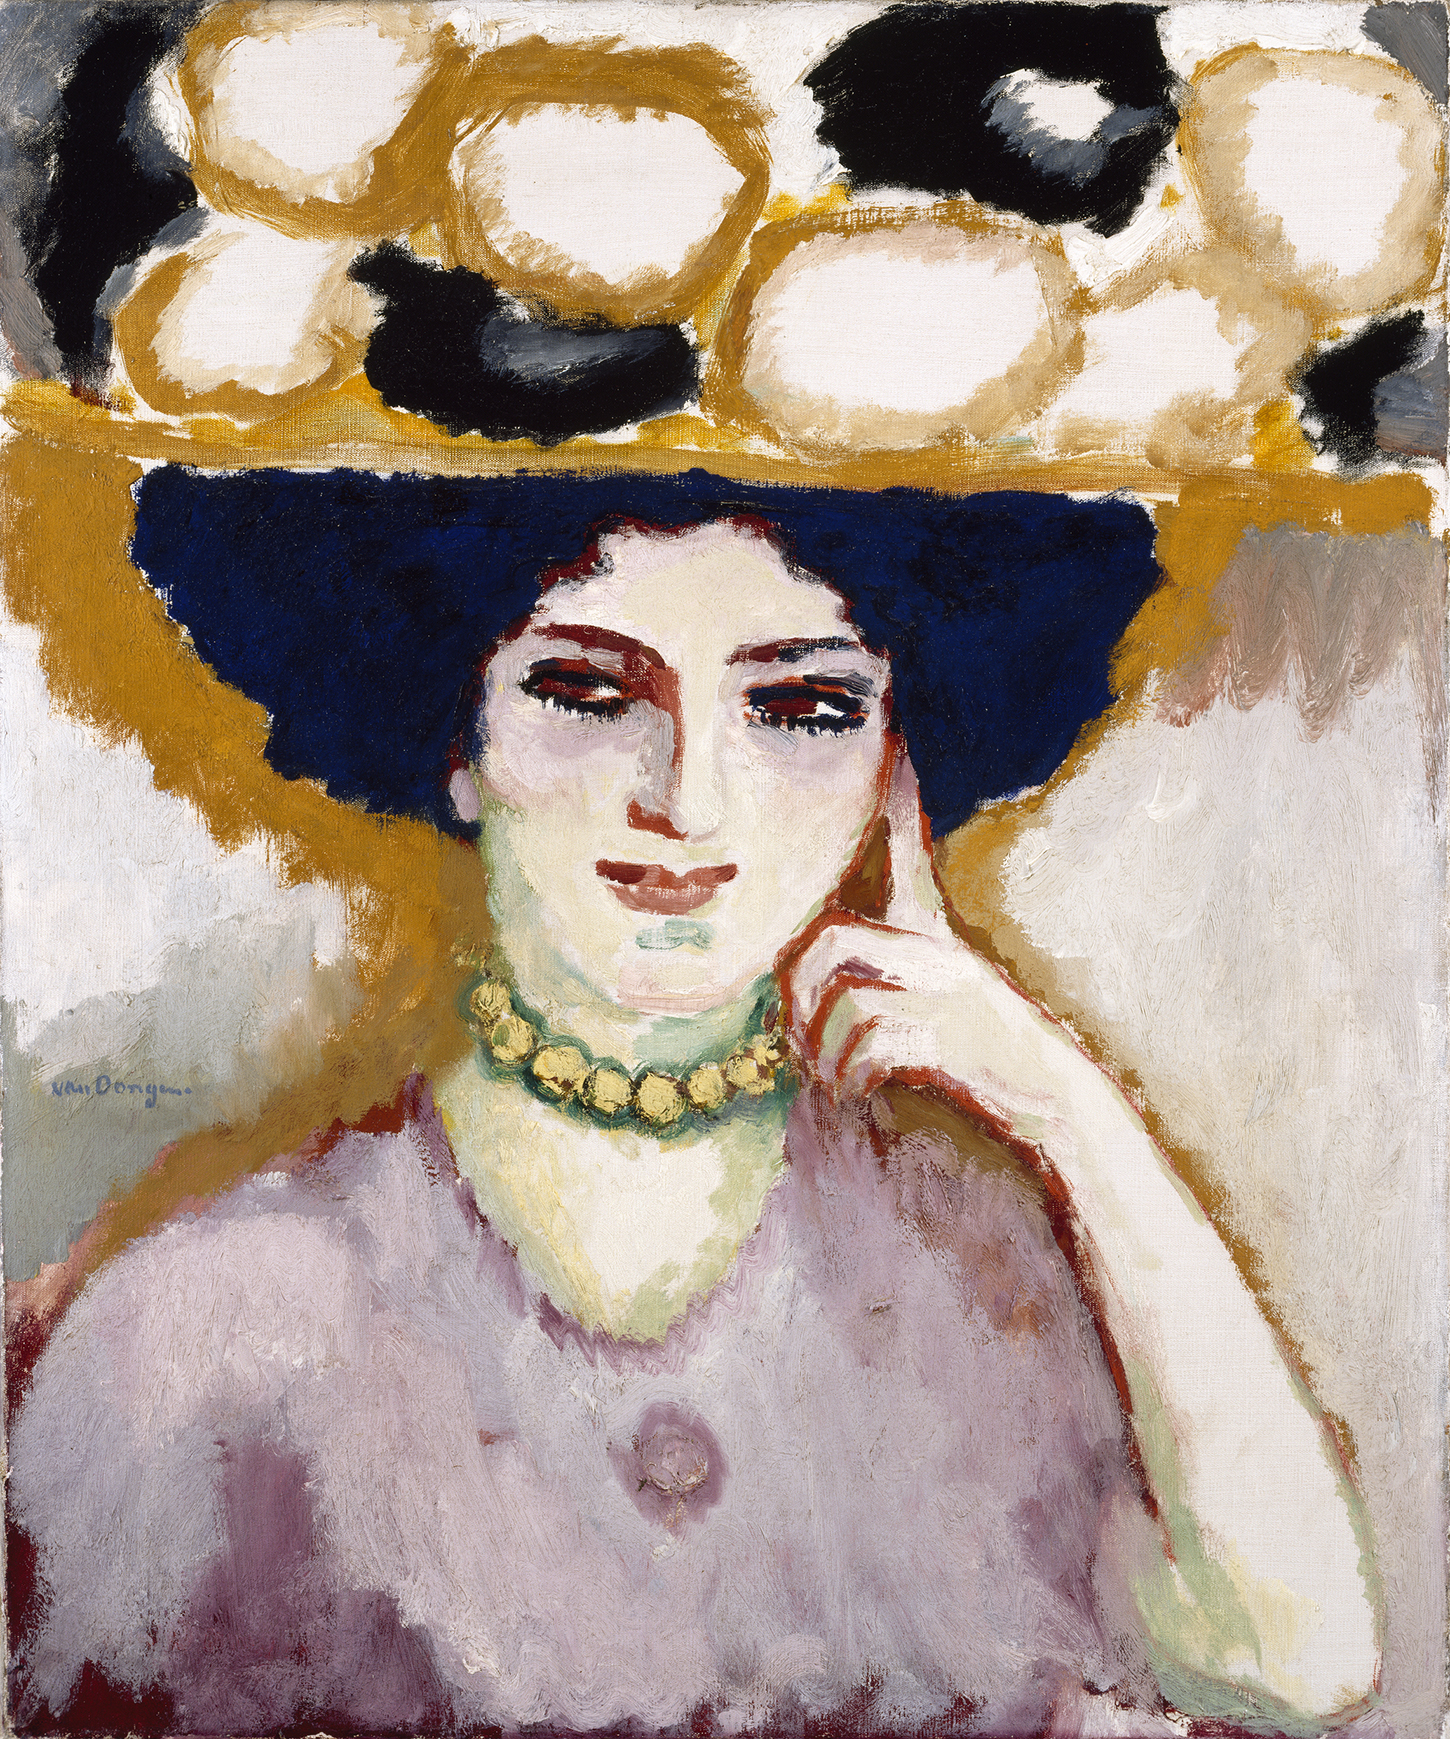 A woman wears a hat with black and white flowers. She wears a mauve dress, with a string of pearls around her neck.